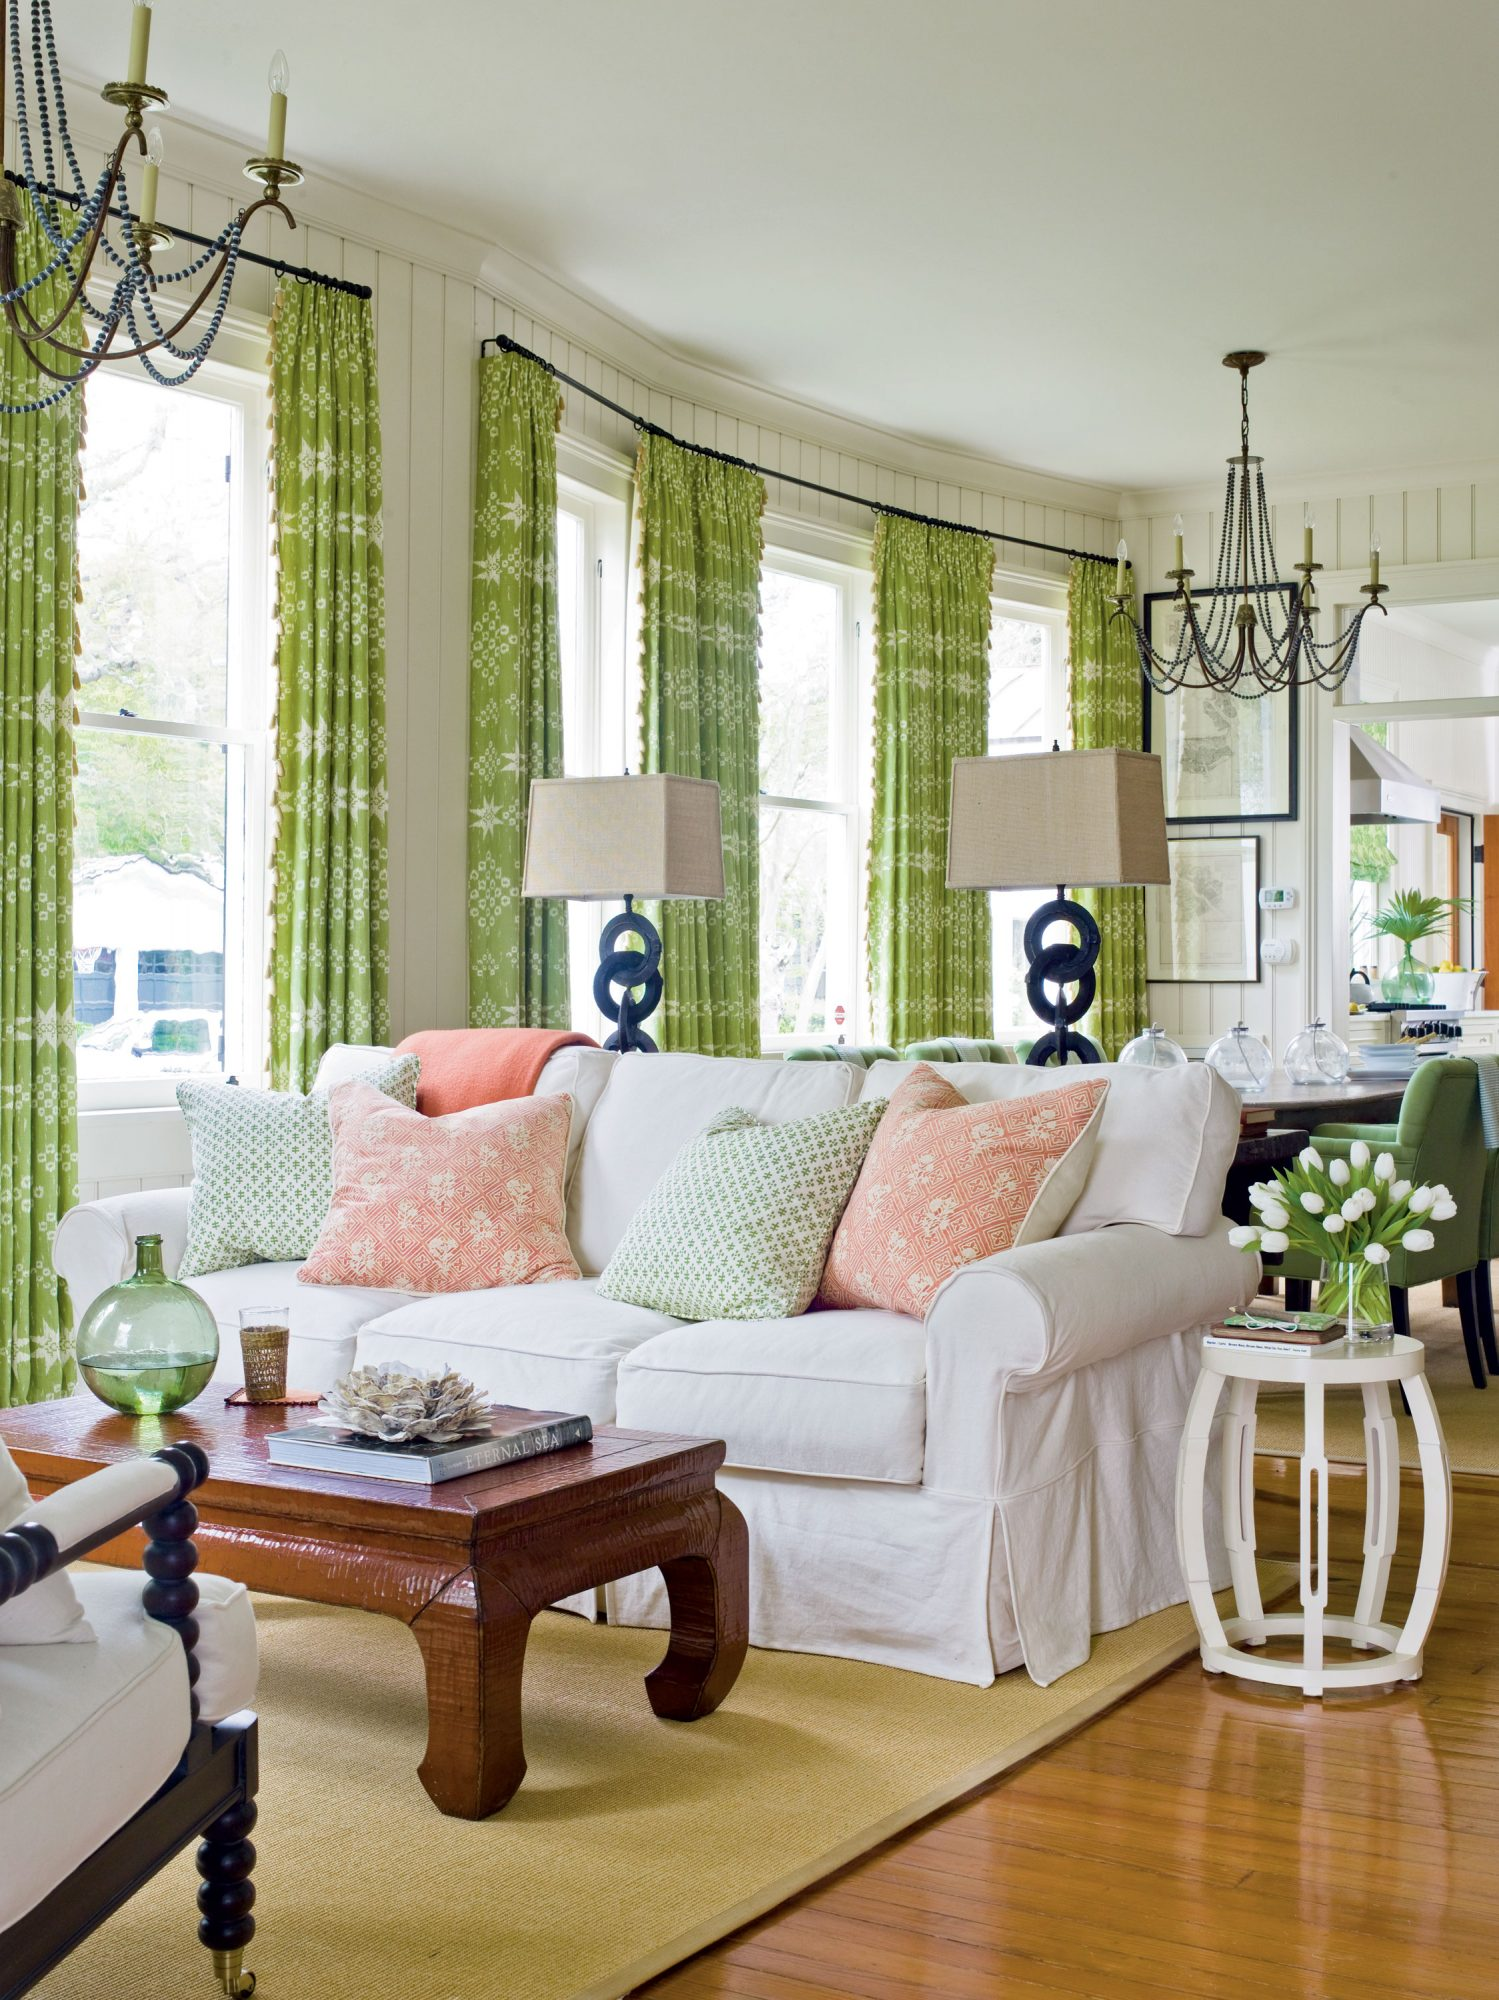 Invigorate your living area with a serious splash of color and fun details such as these iron lamps. The decor lets guests know to get ready for a good time, but it's the comfy couch that gets them to stay awhile.